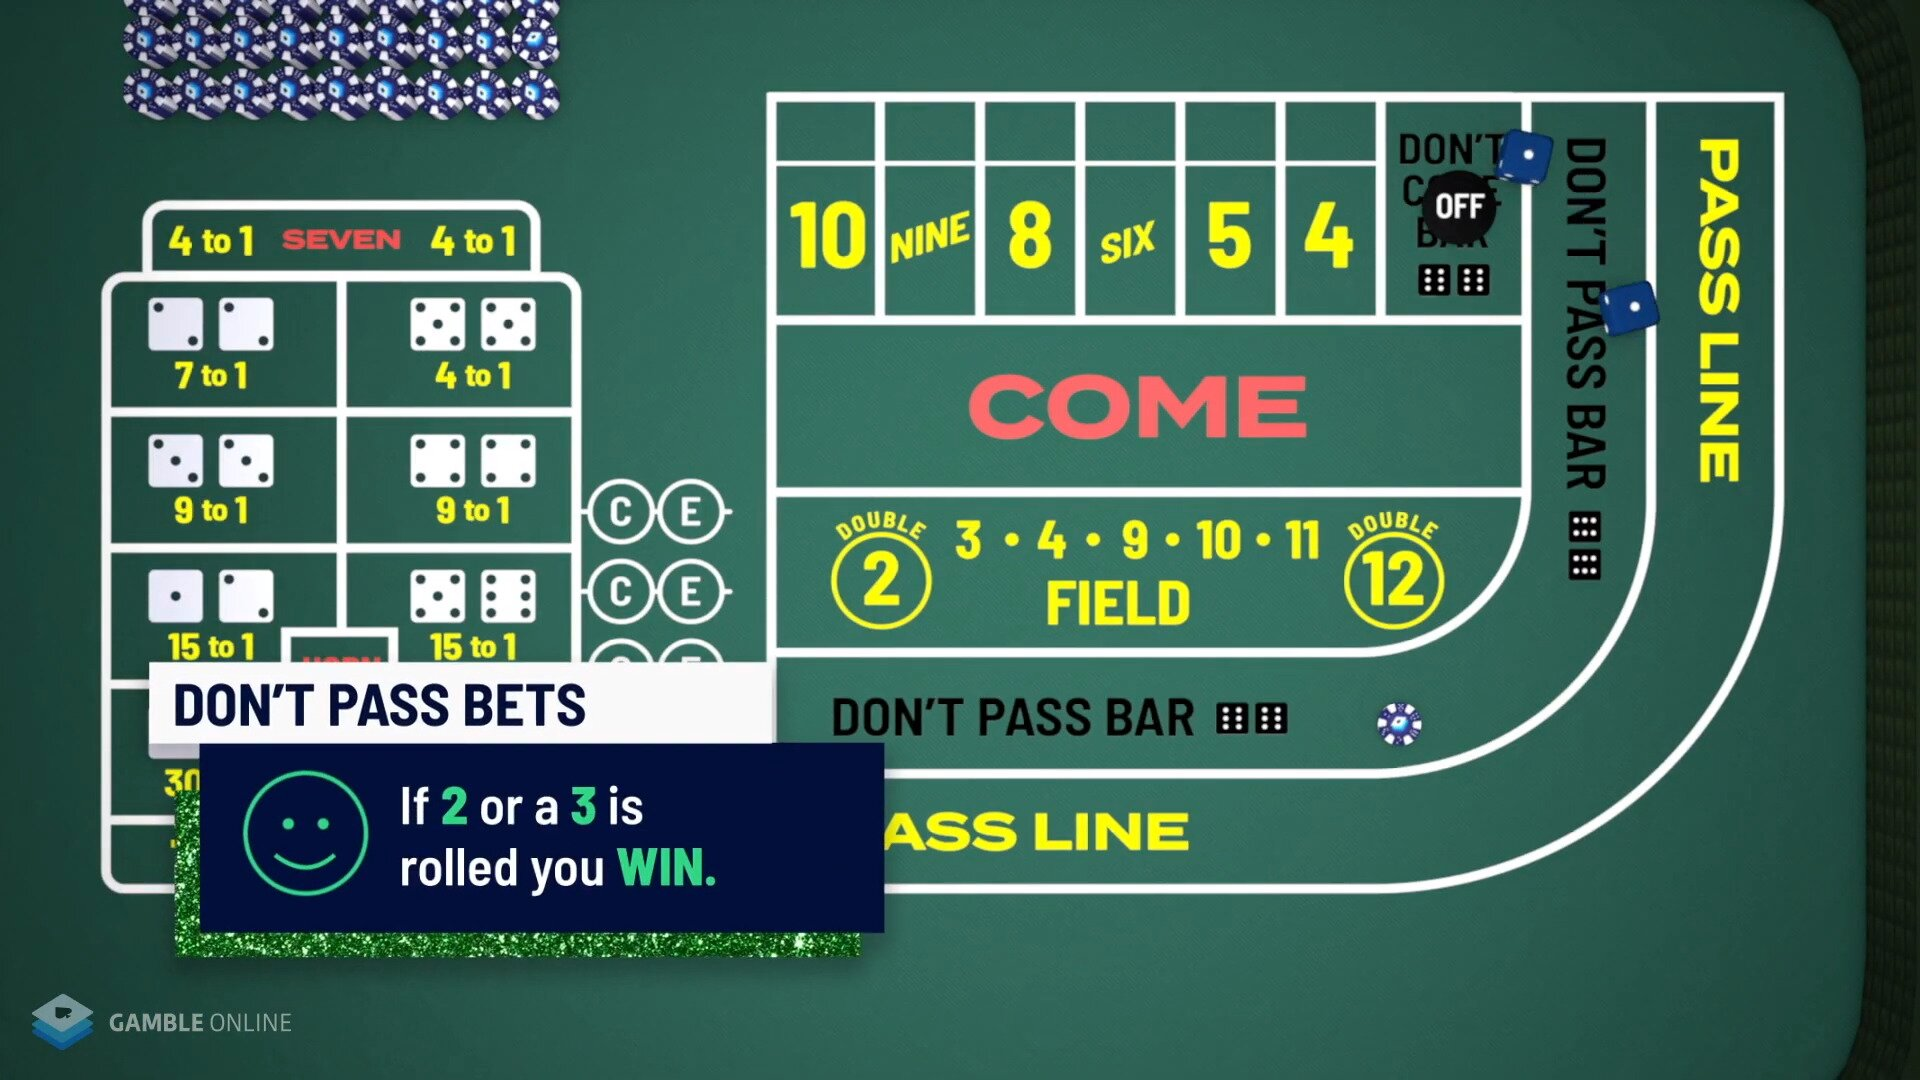 How to Play Craps Online _ Learn to Play Craps in Under 10 Minutes 2020 1-57 screenshot